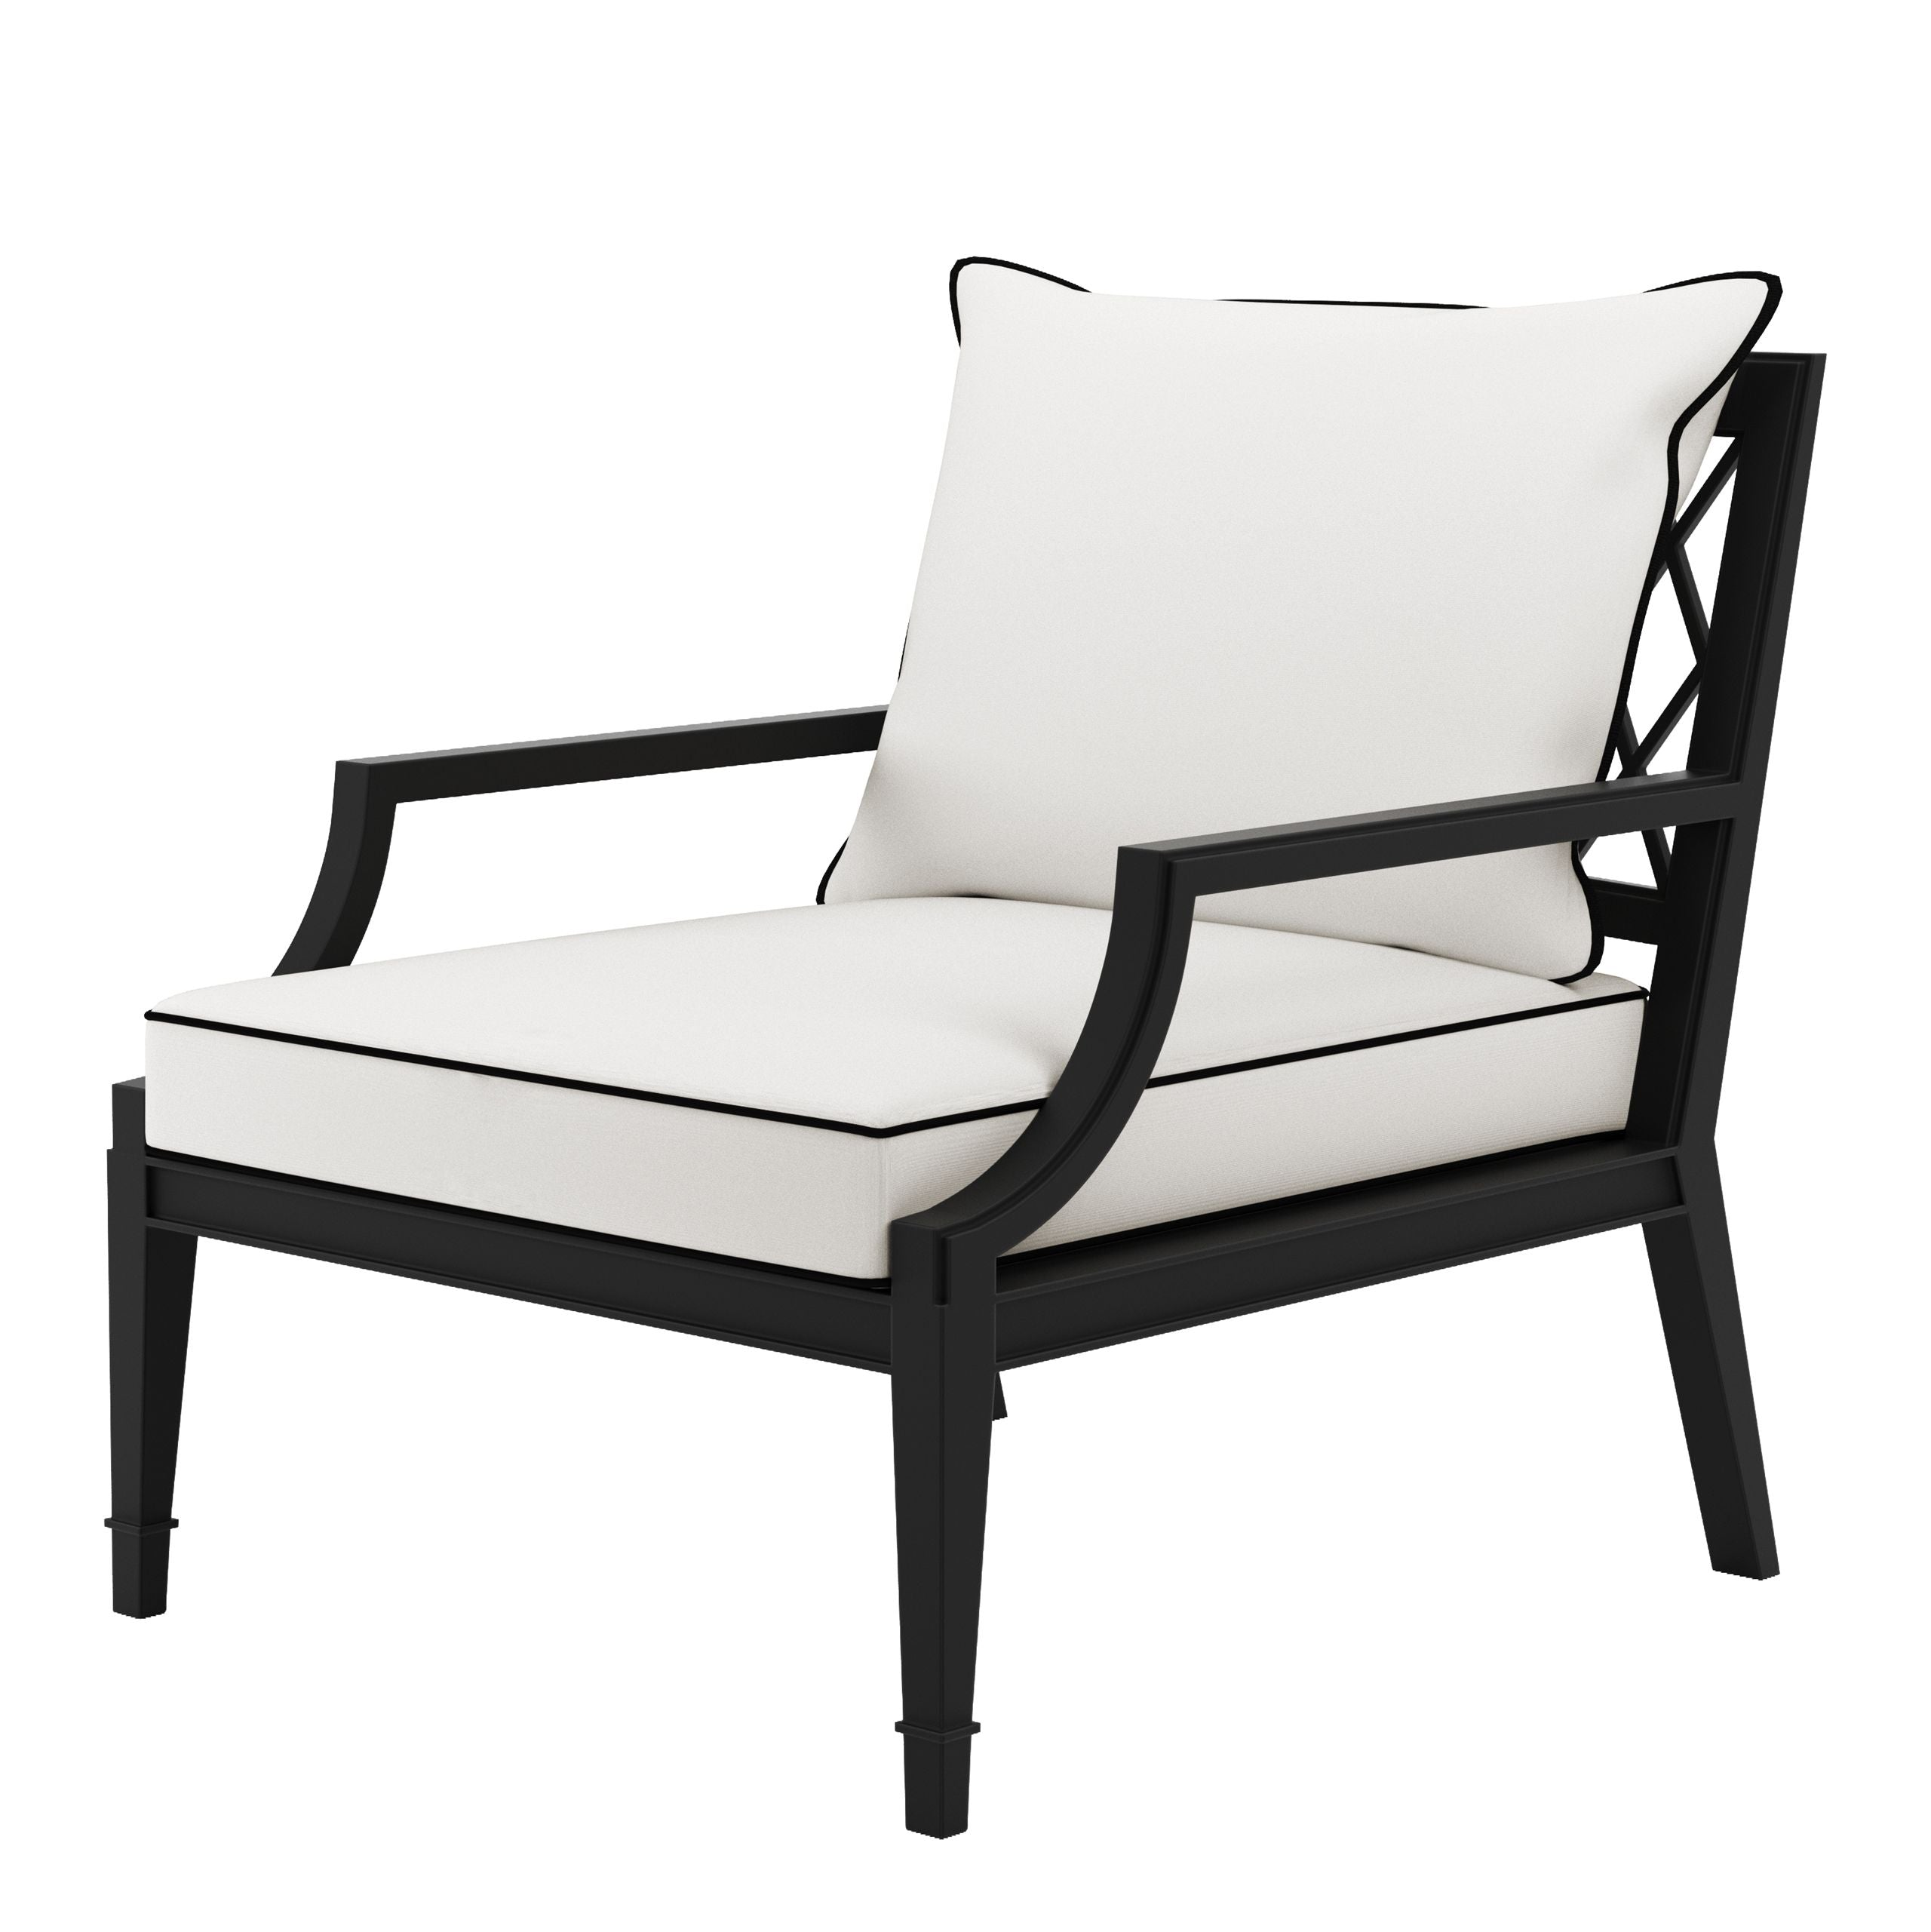 Outdoor Chair Bella Vista Black